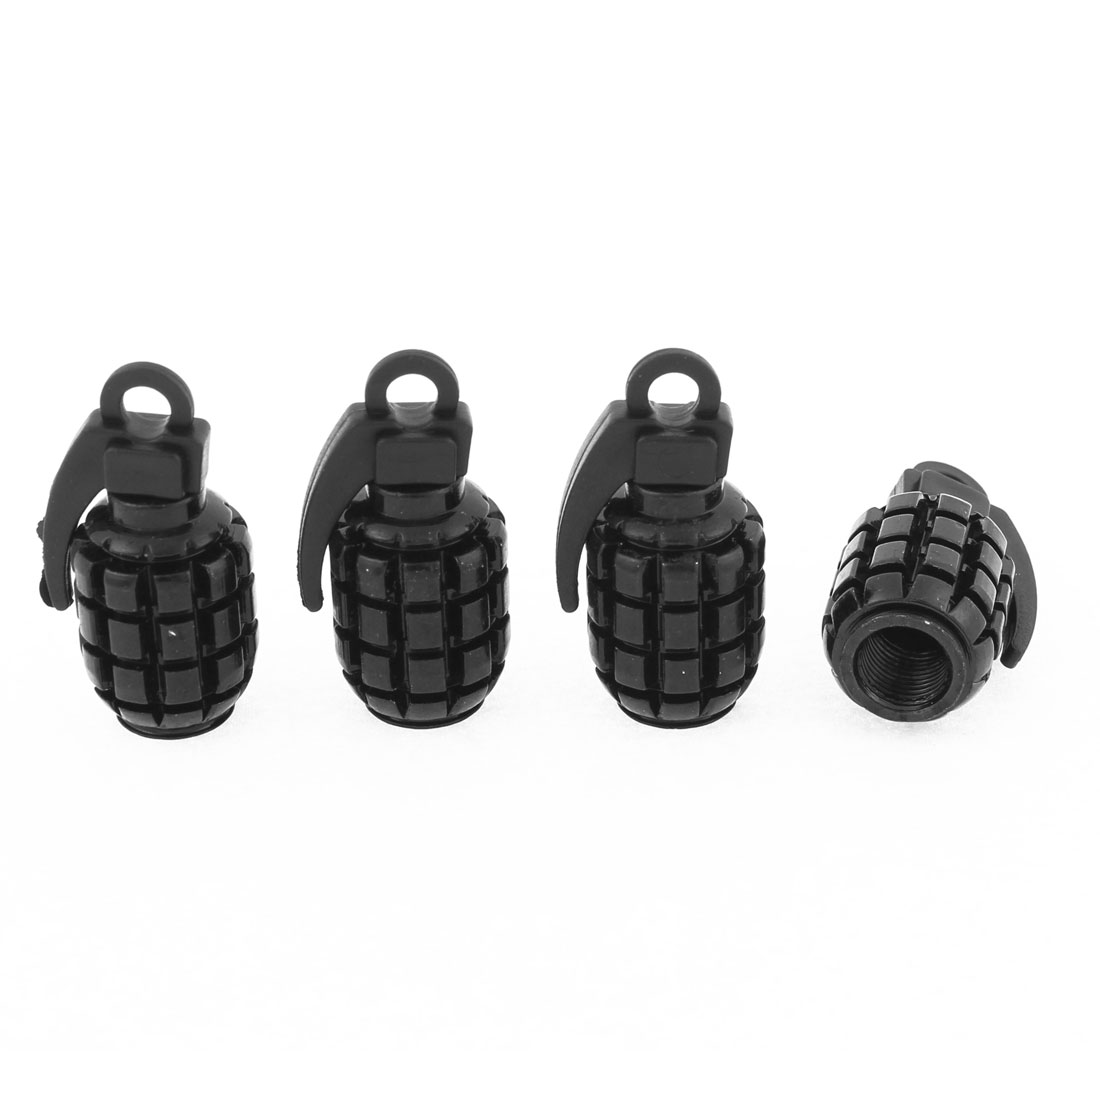 Vehicle Metal Plastic Bomb Shape Tire Tyre Air Valves Stems Wheels Decor Cap Cover Black 4pcs